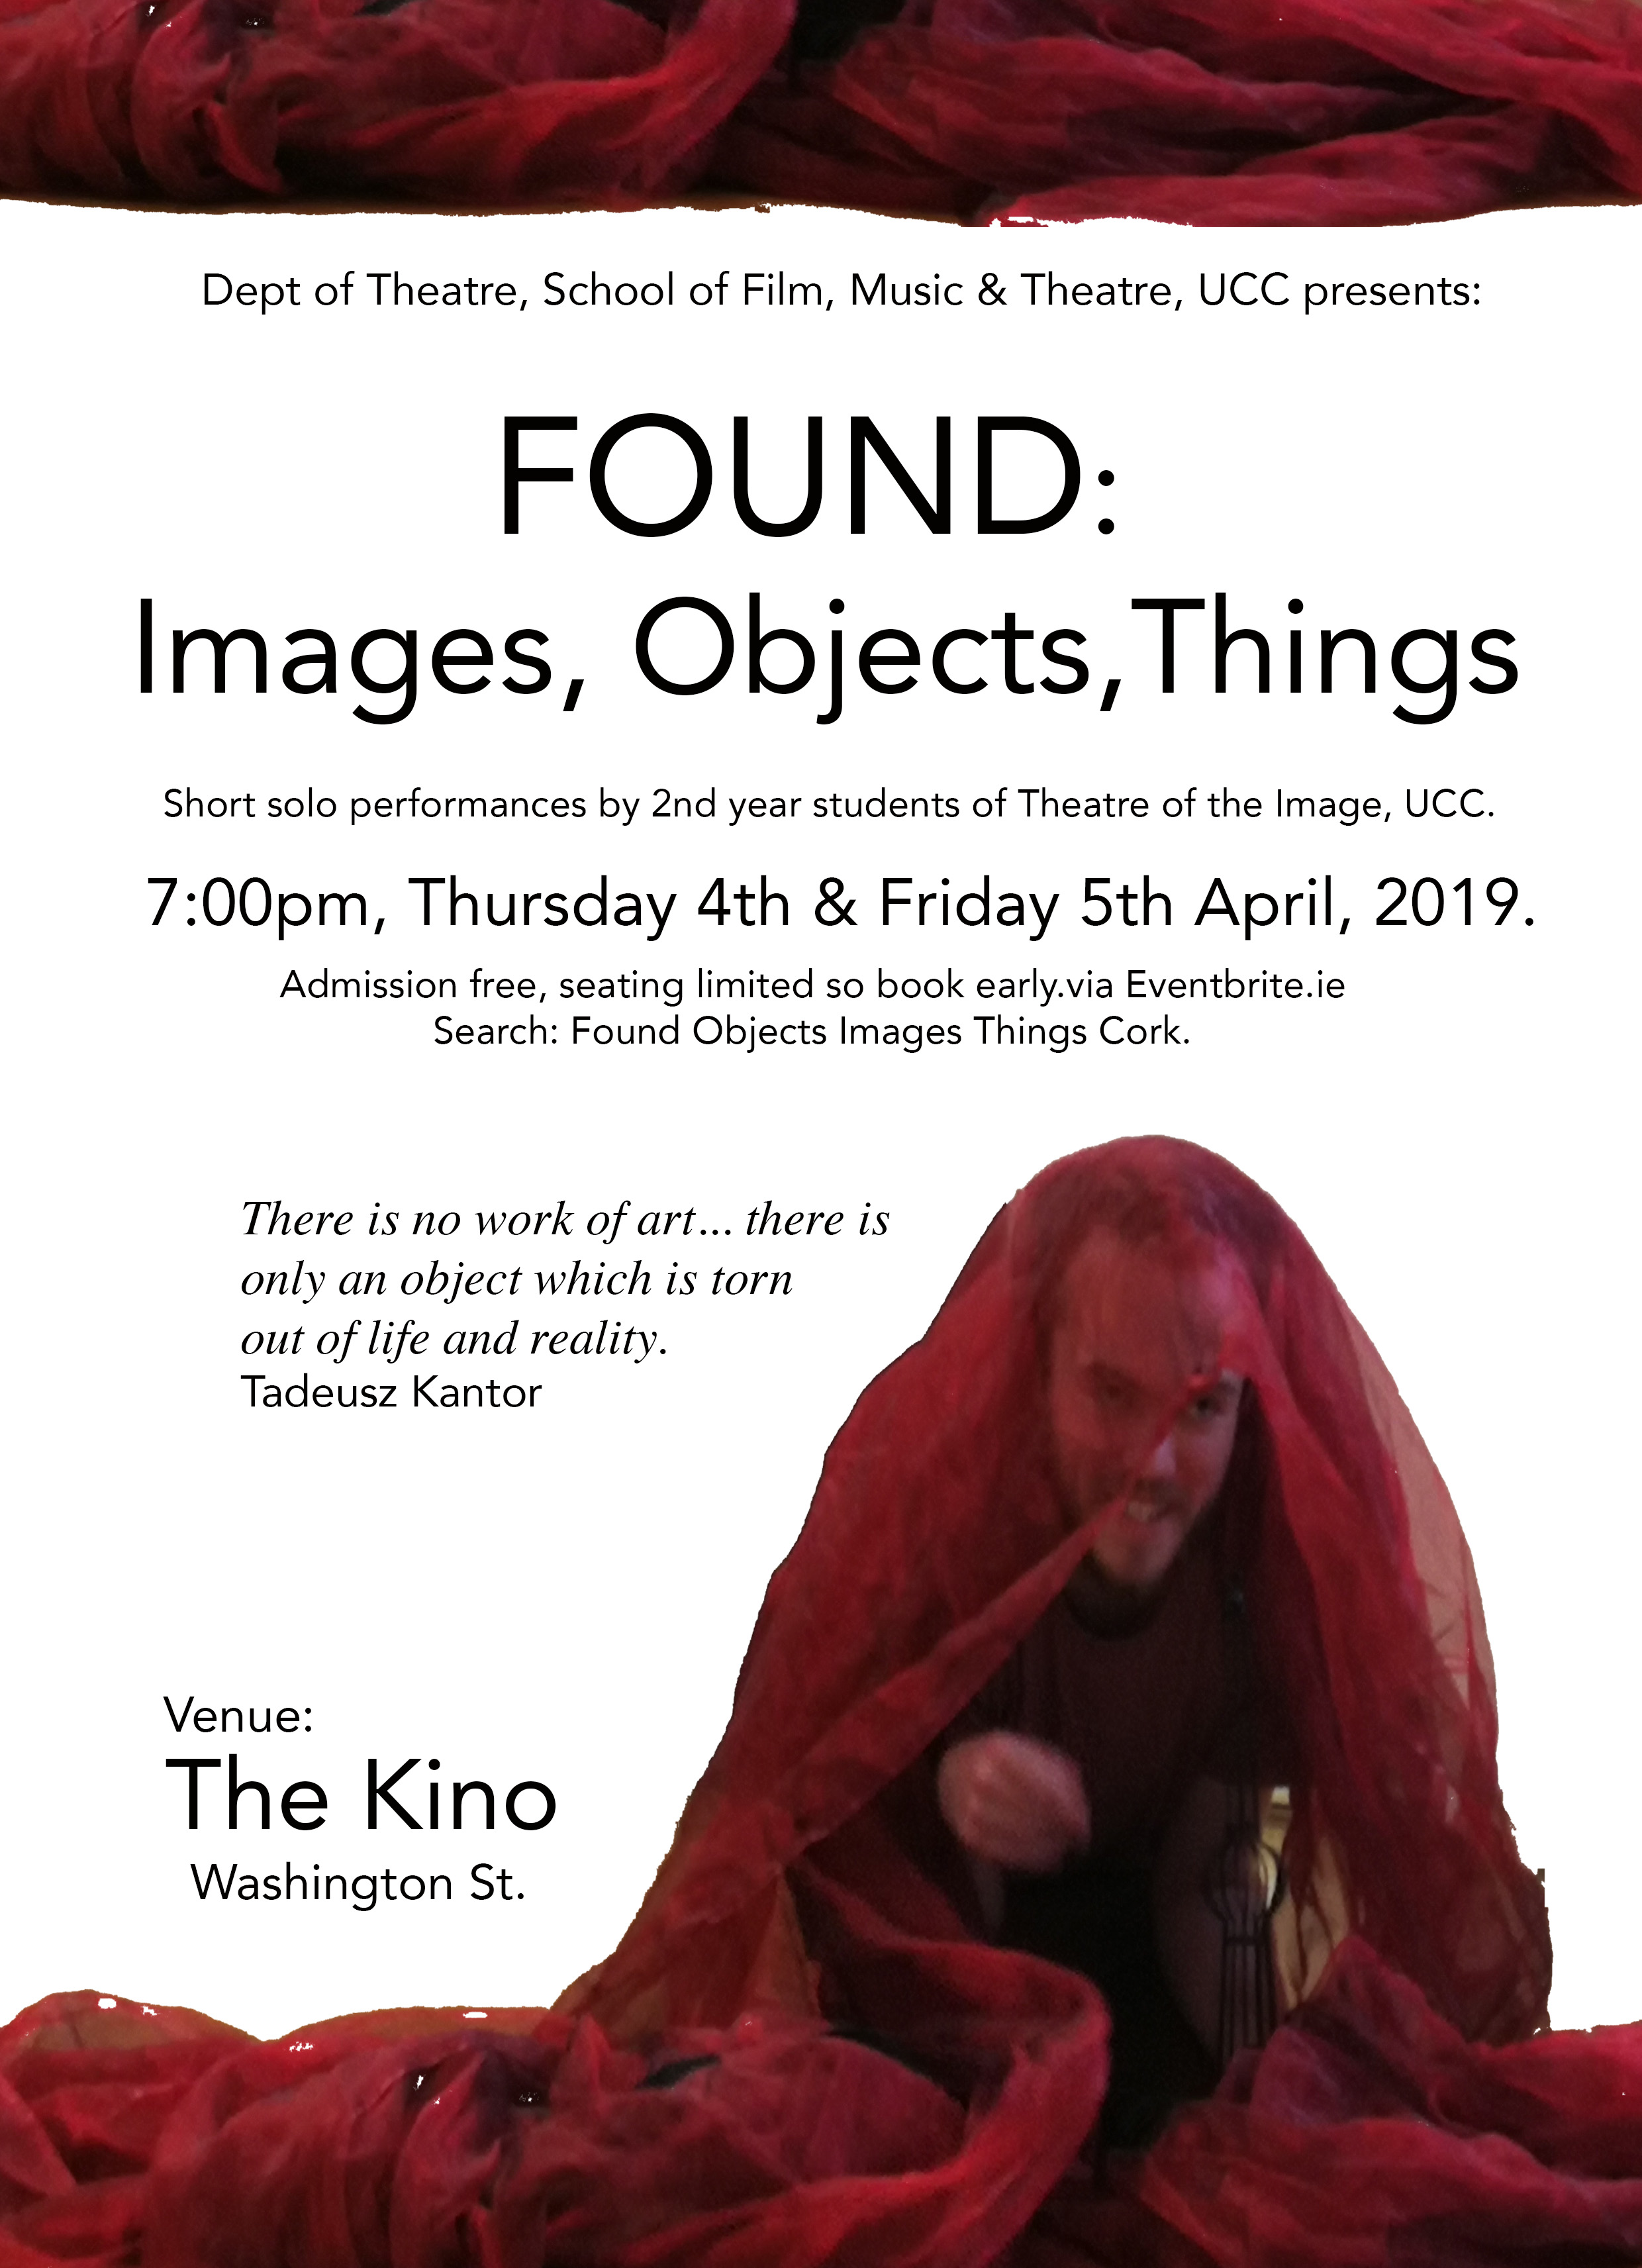 FOUND: Images, Objects, Things